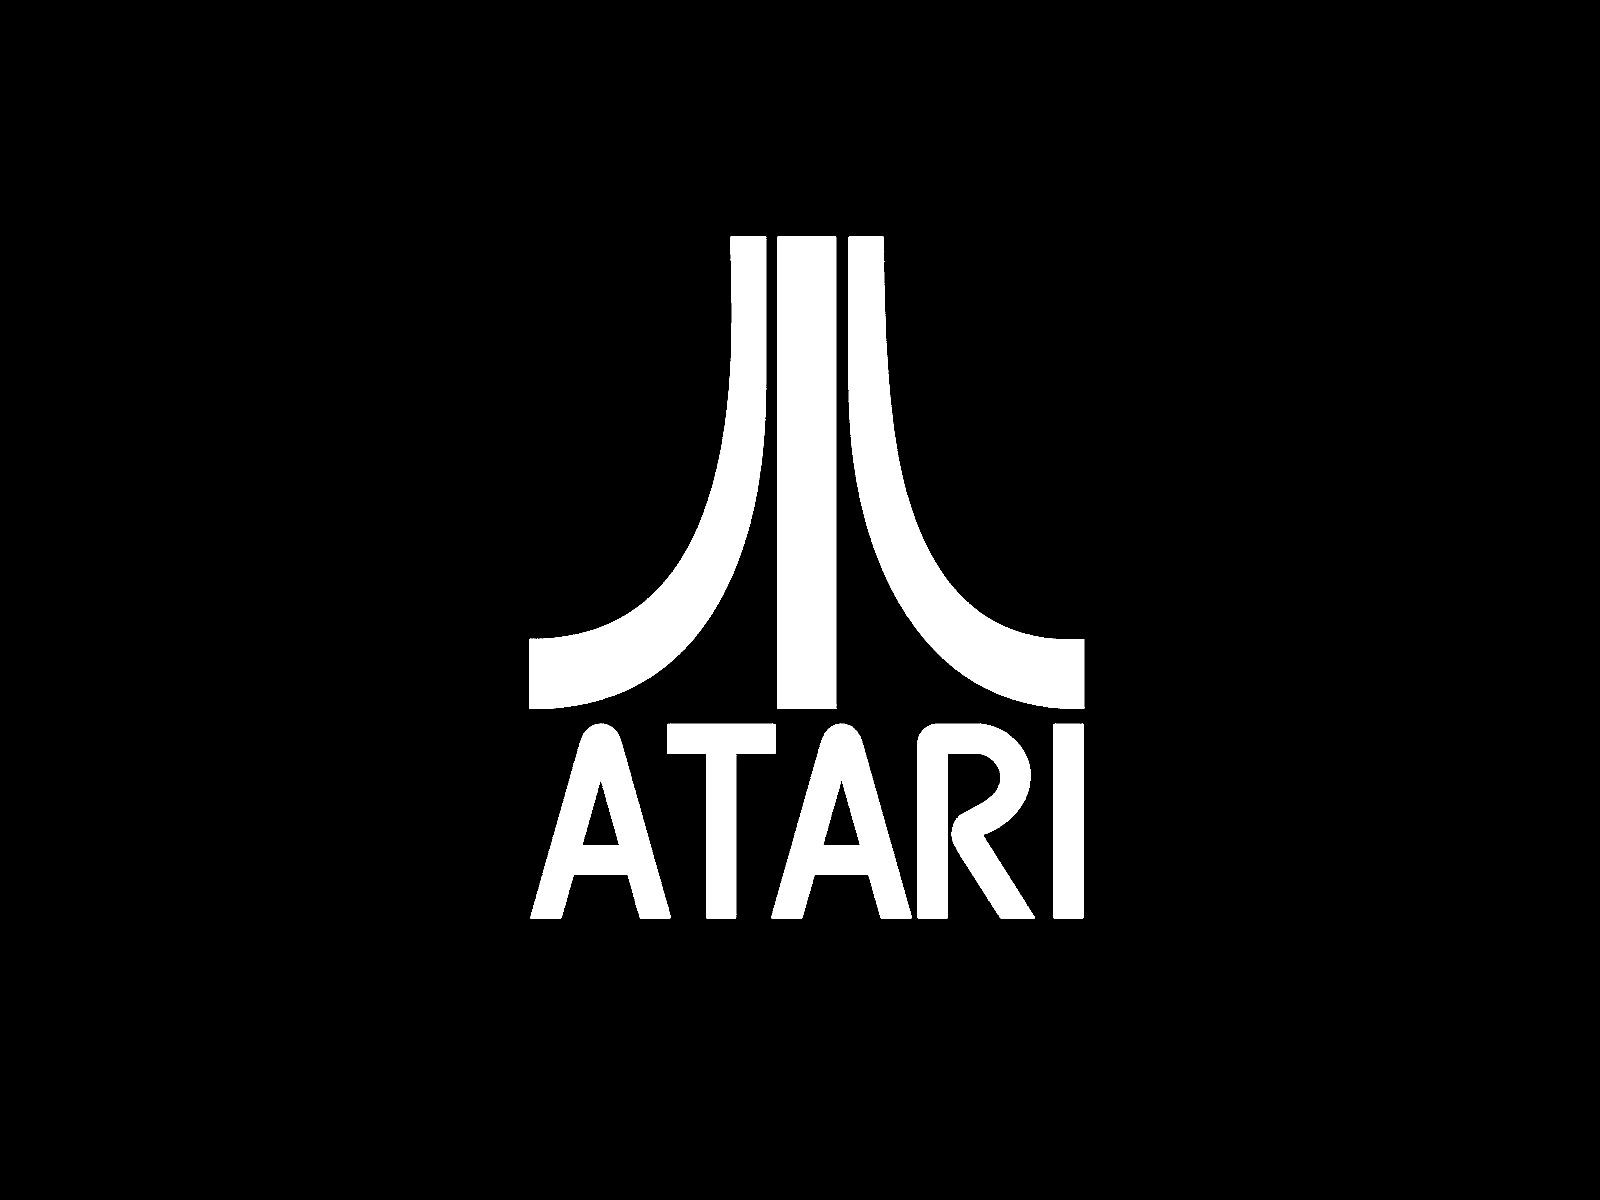 Atari Logo Wallpaper